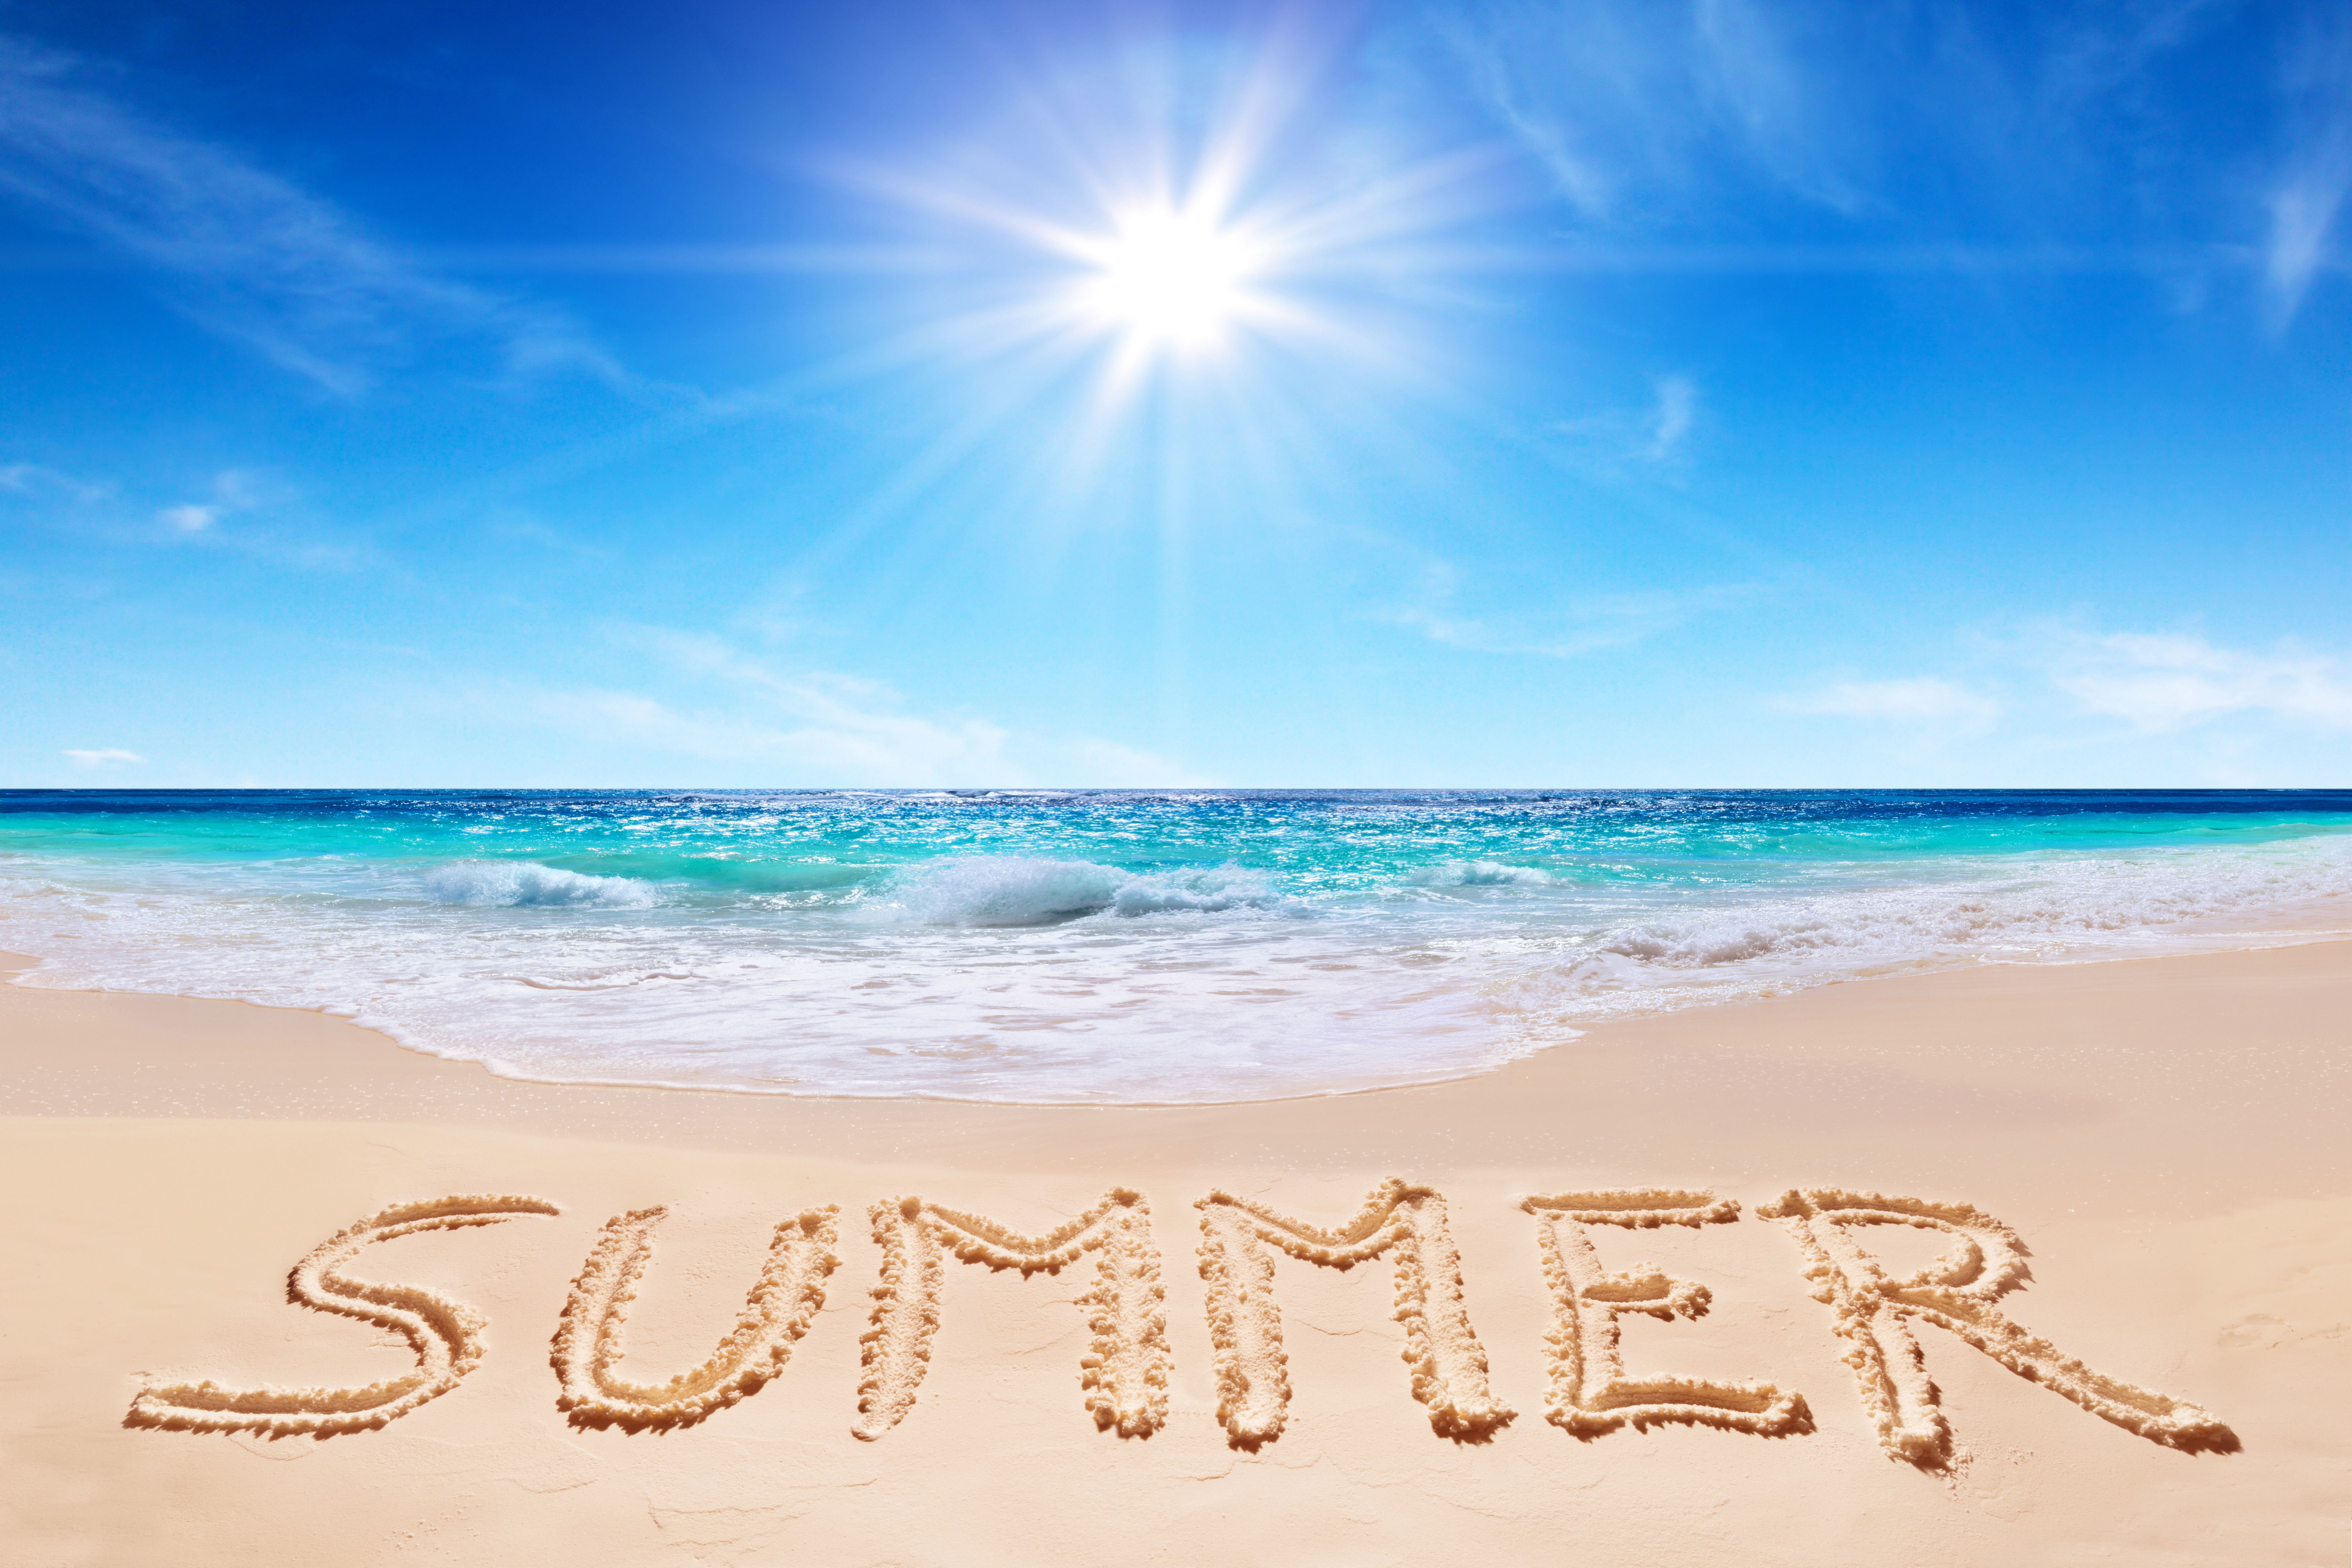 The 15 Best Summer Wallpapers of 2019 6000x4000